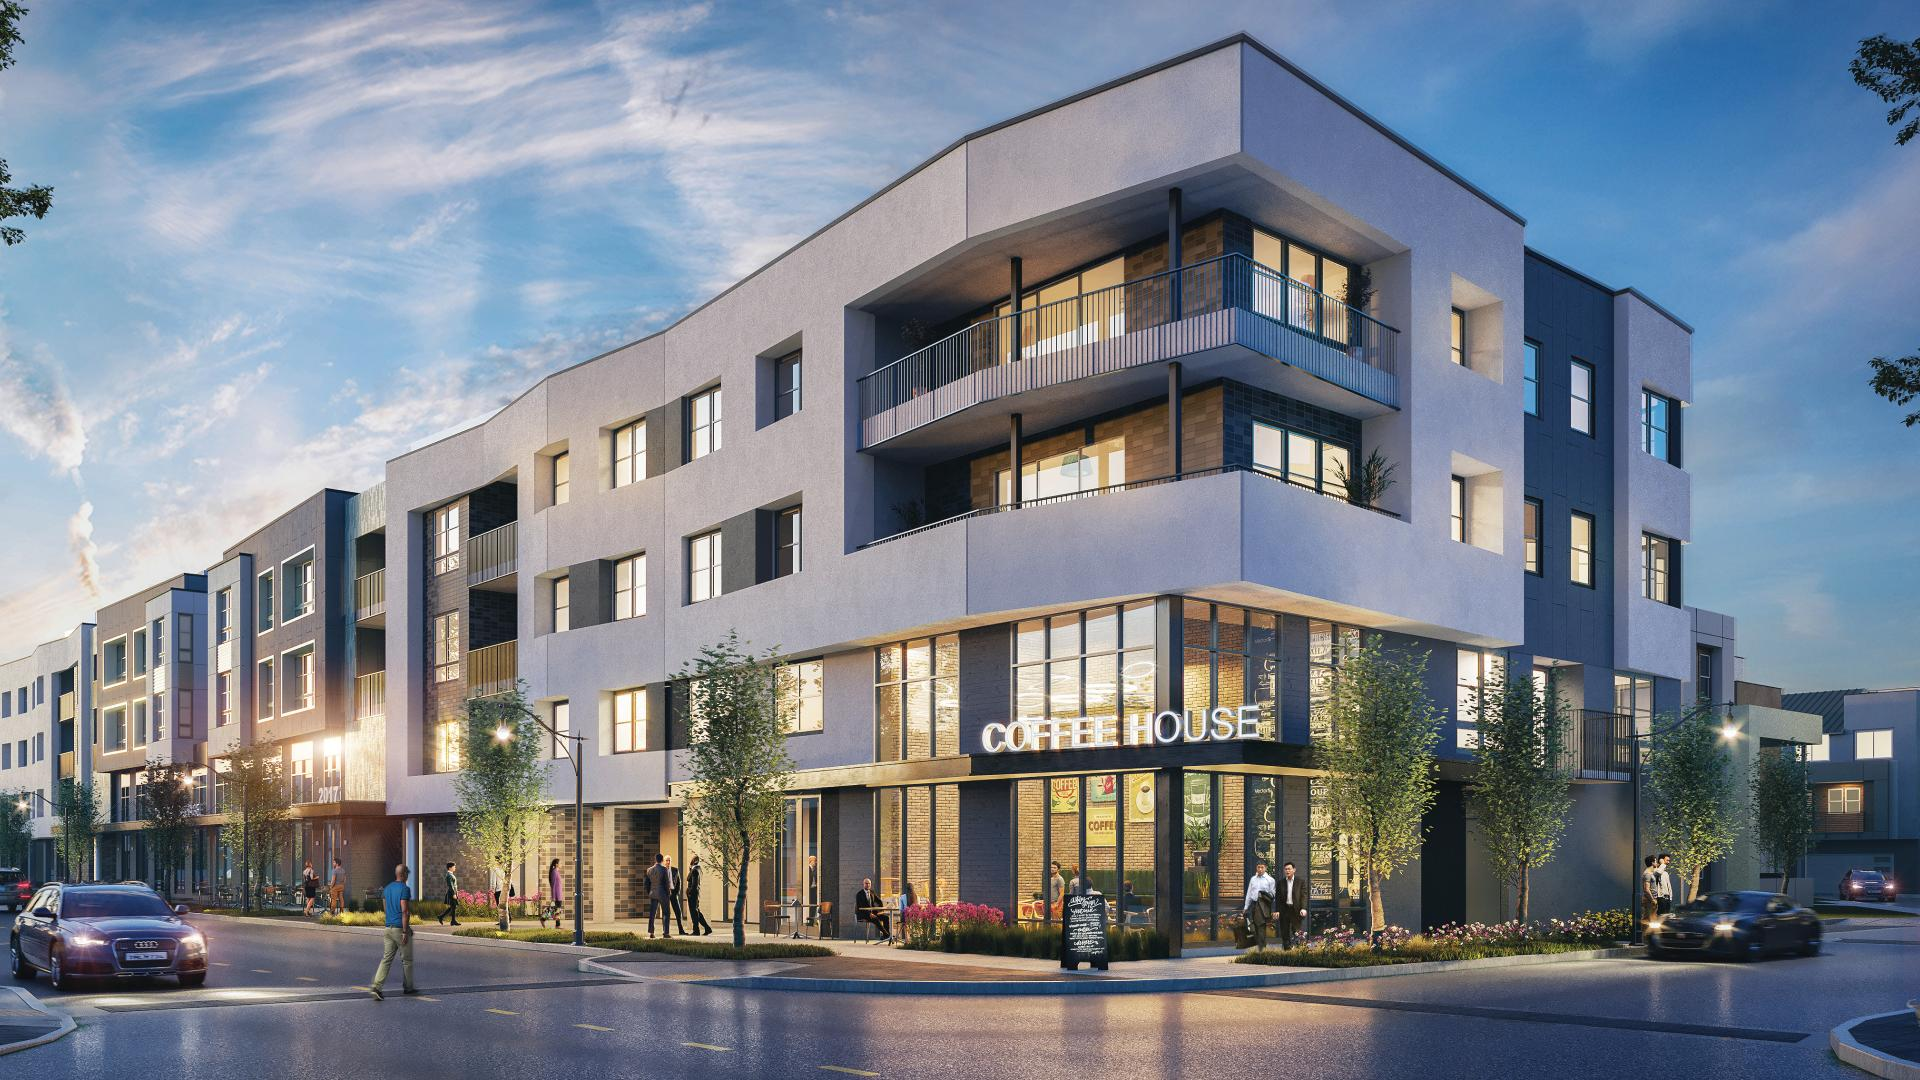 Neighborhood retail available with stacked luxury flats on top